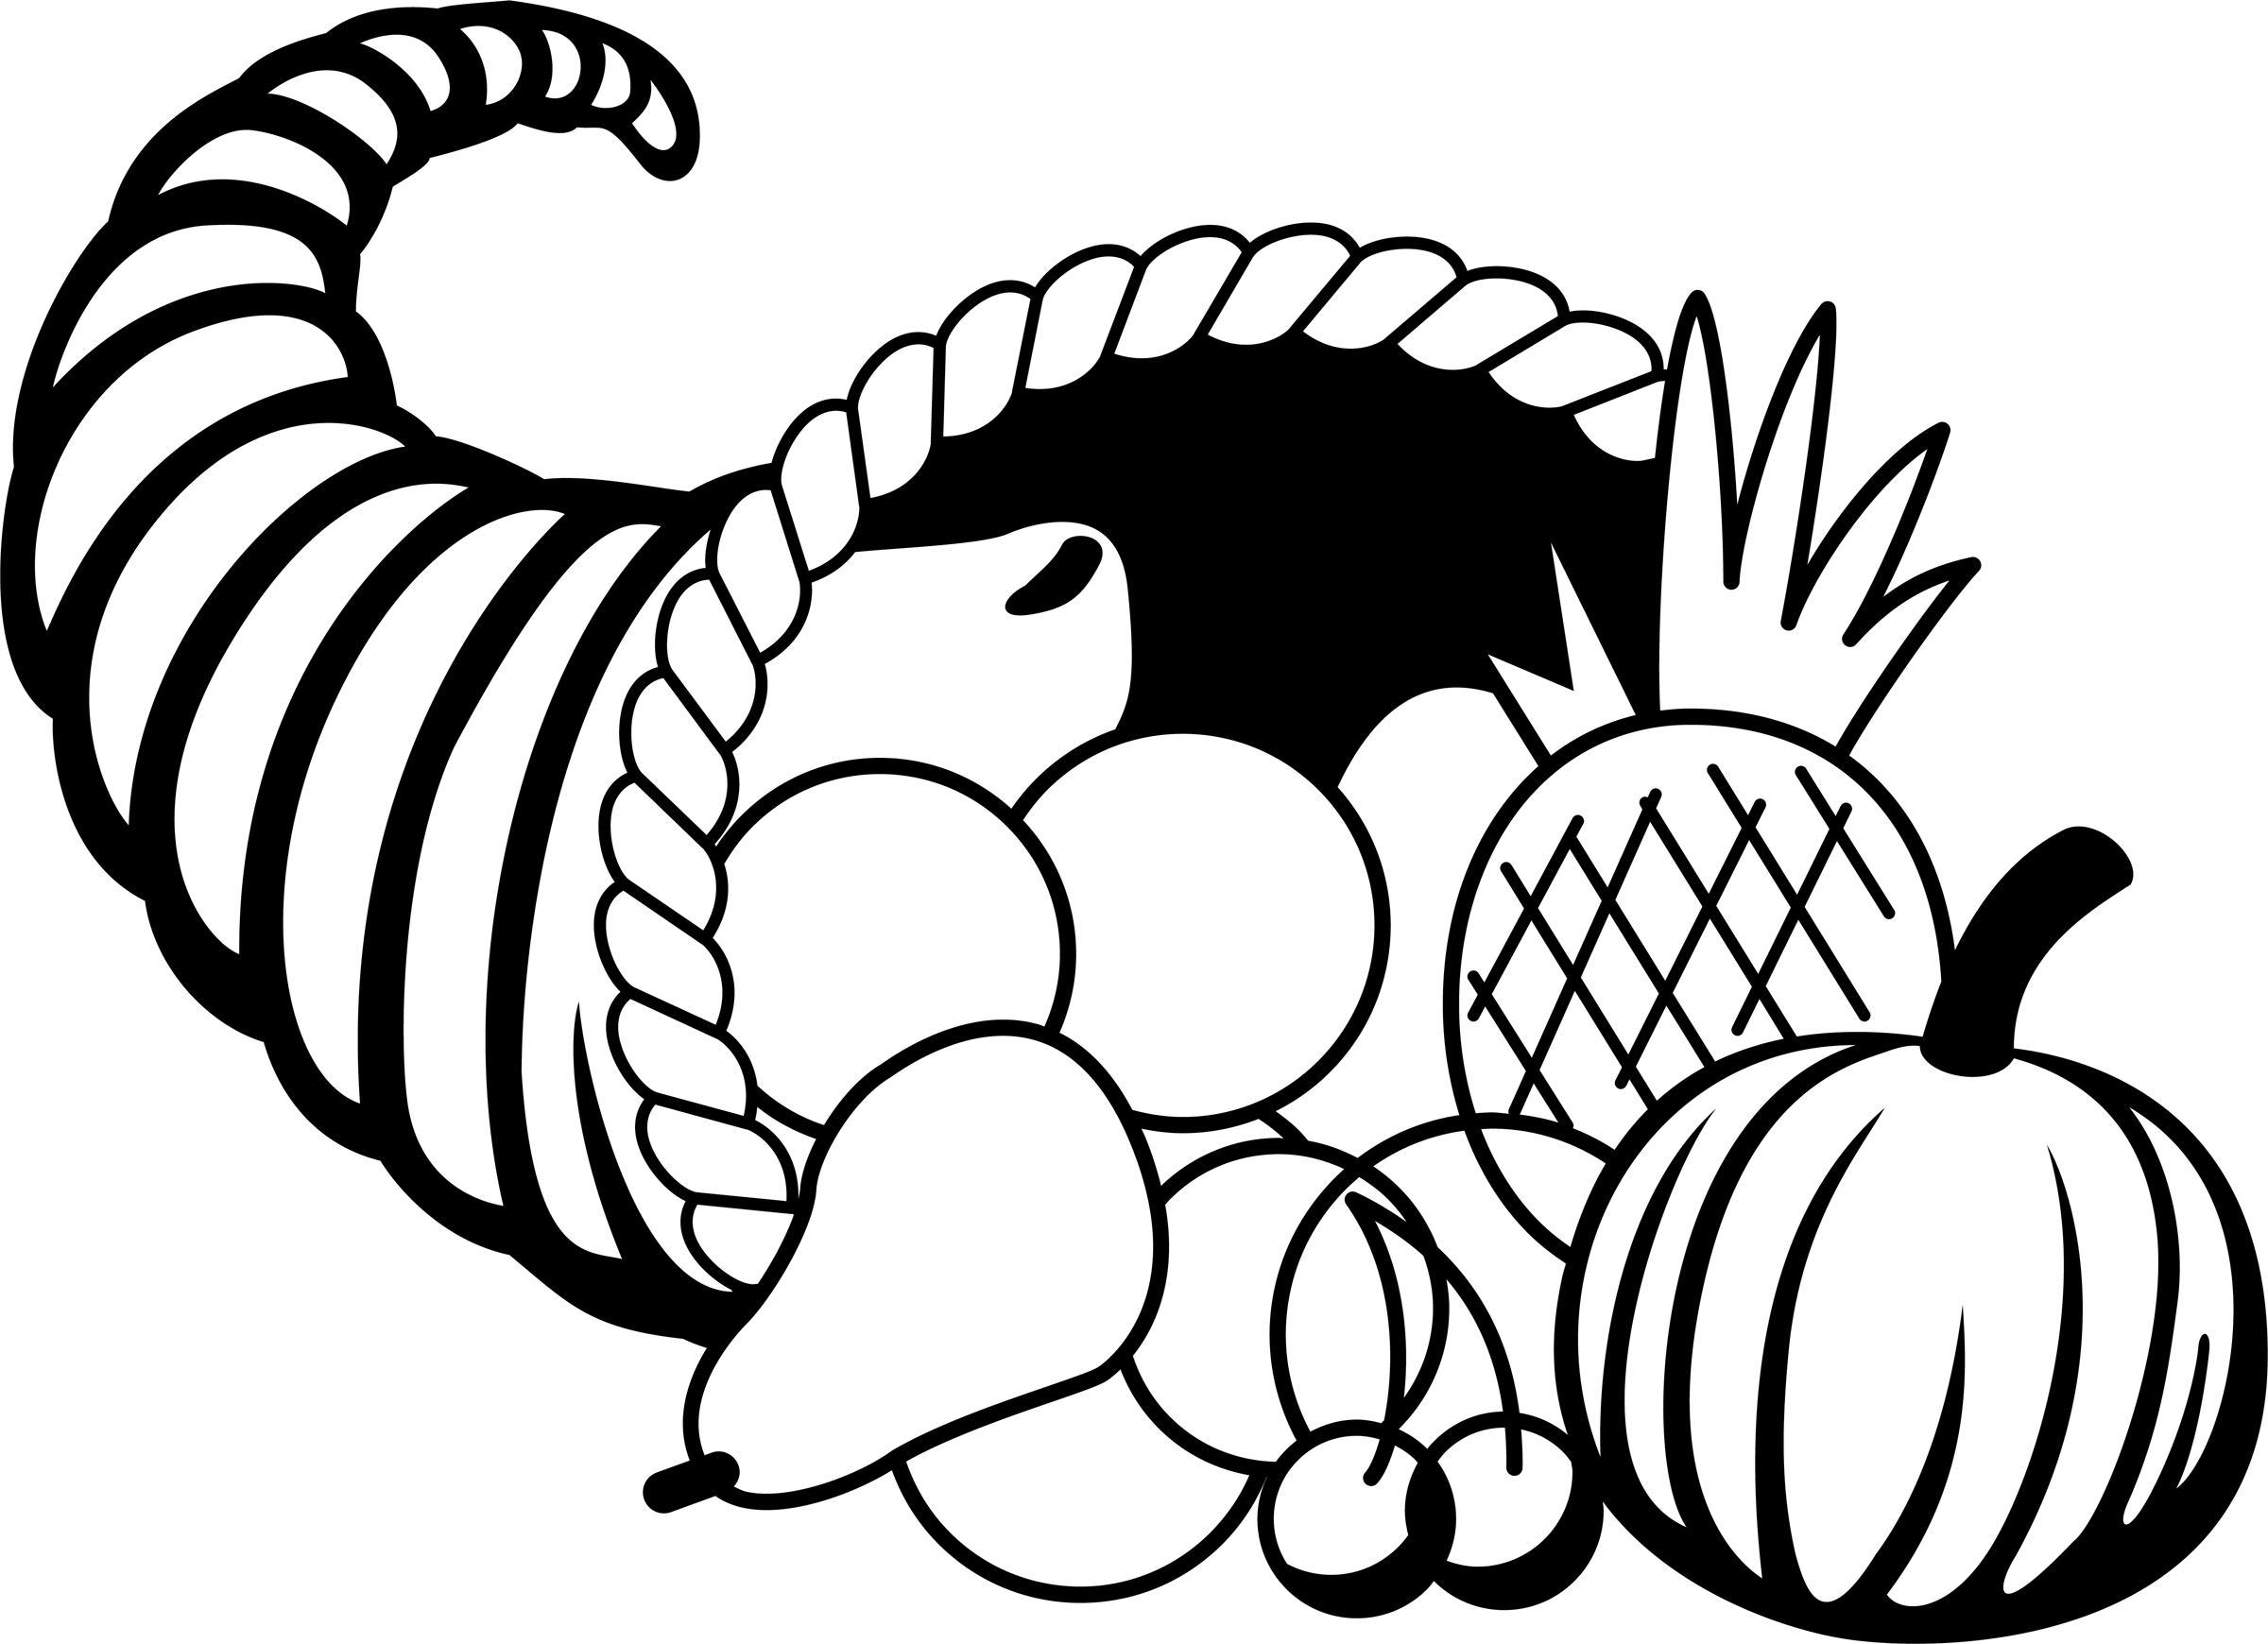 Free Thanksgiving Black And White Clipart Borders   Happy Thanksgiving